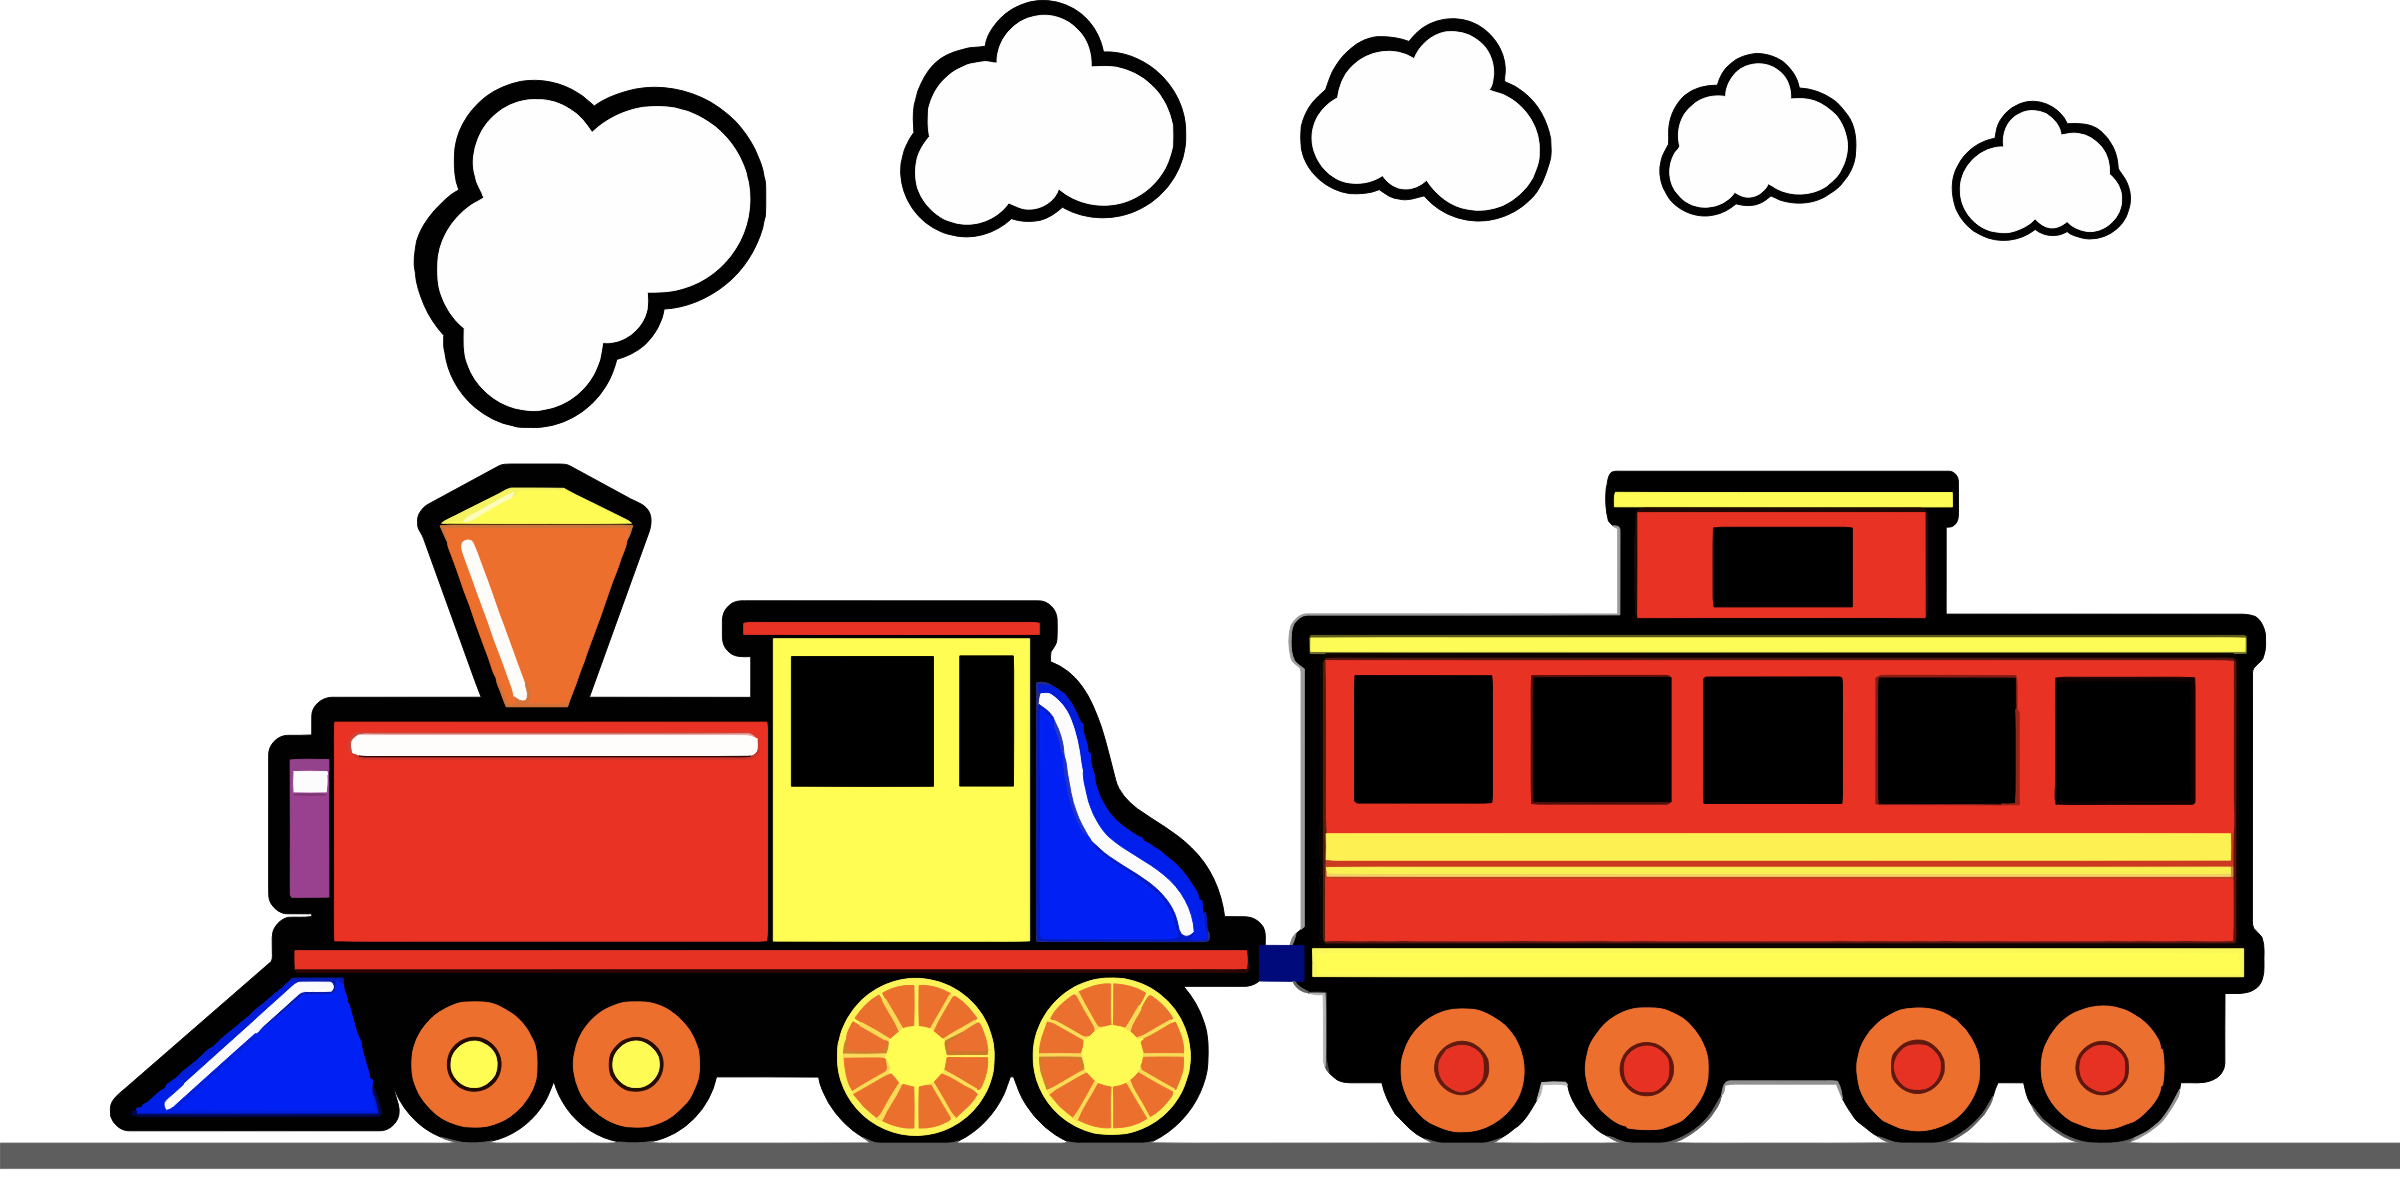 Trin clipart clipart freeuse library Train Clipart to download free – Free Clipart Images clipart freeuse library